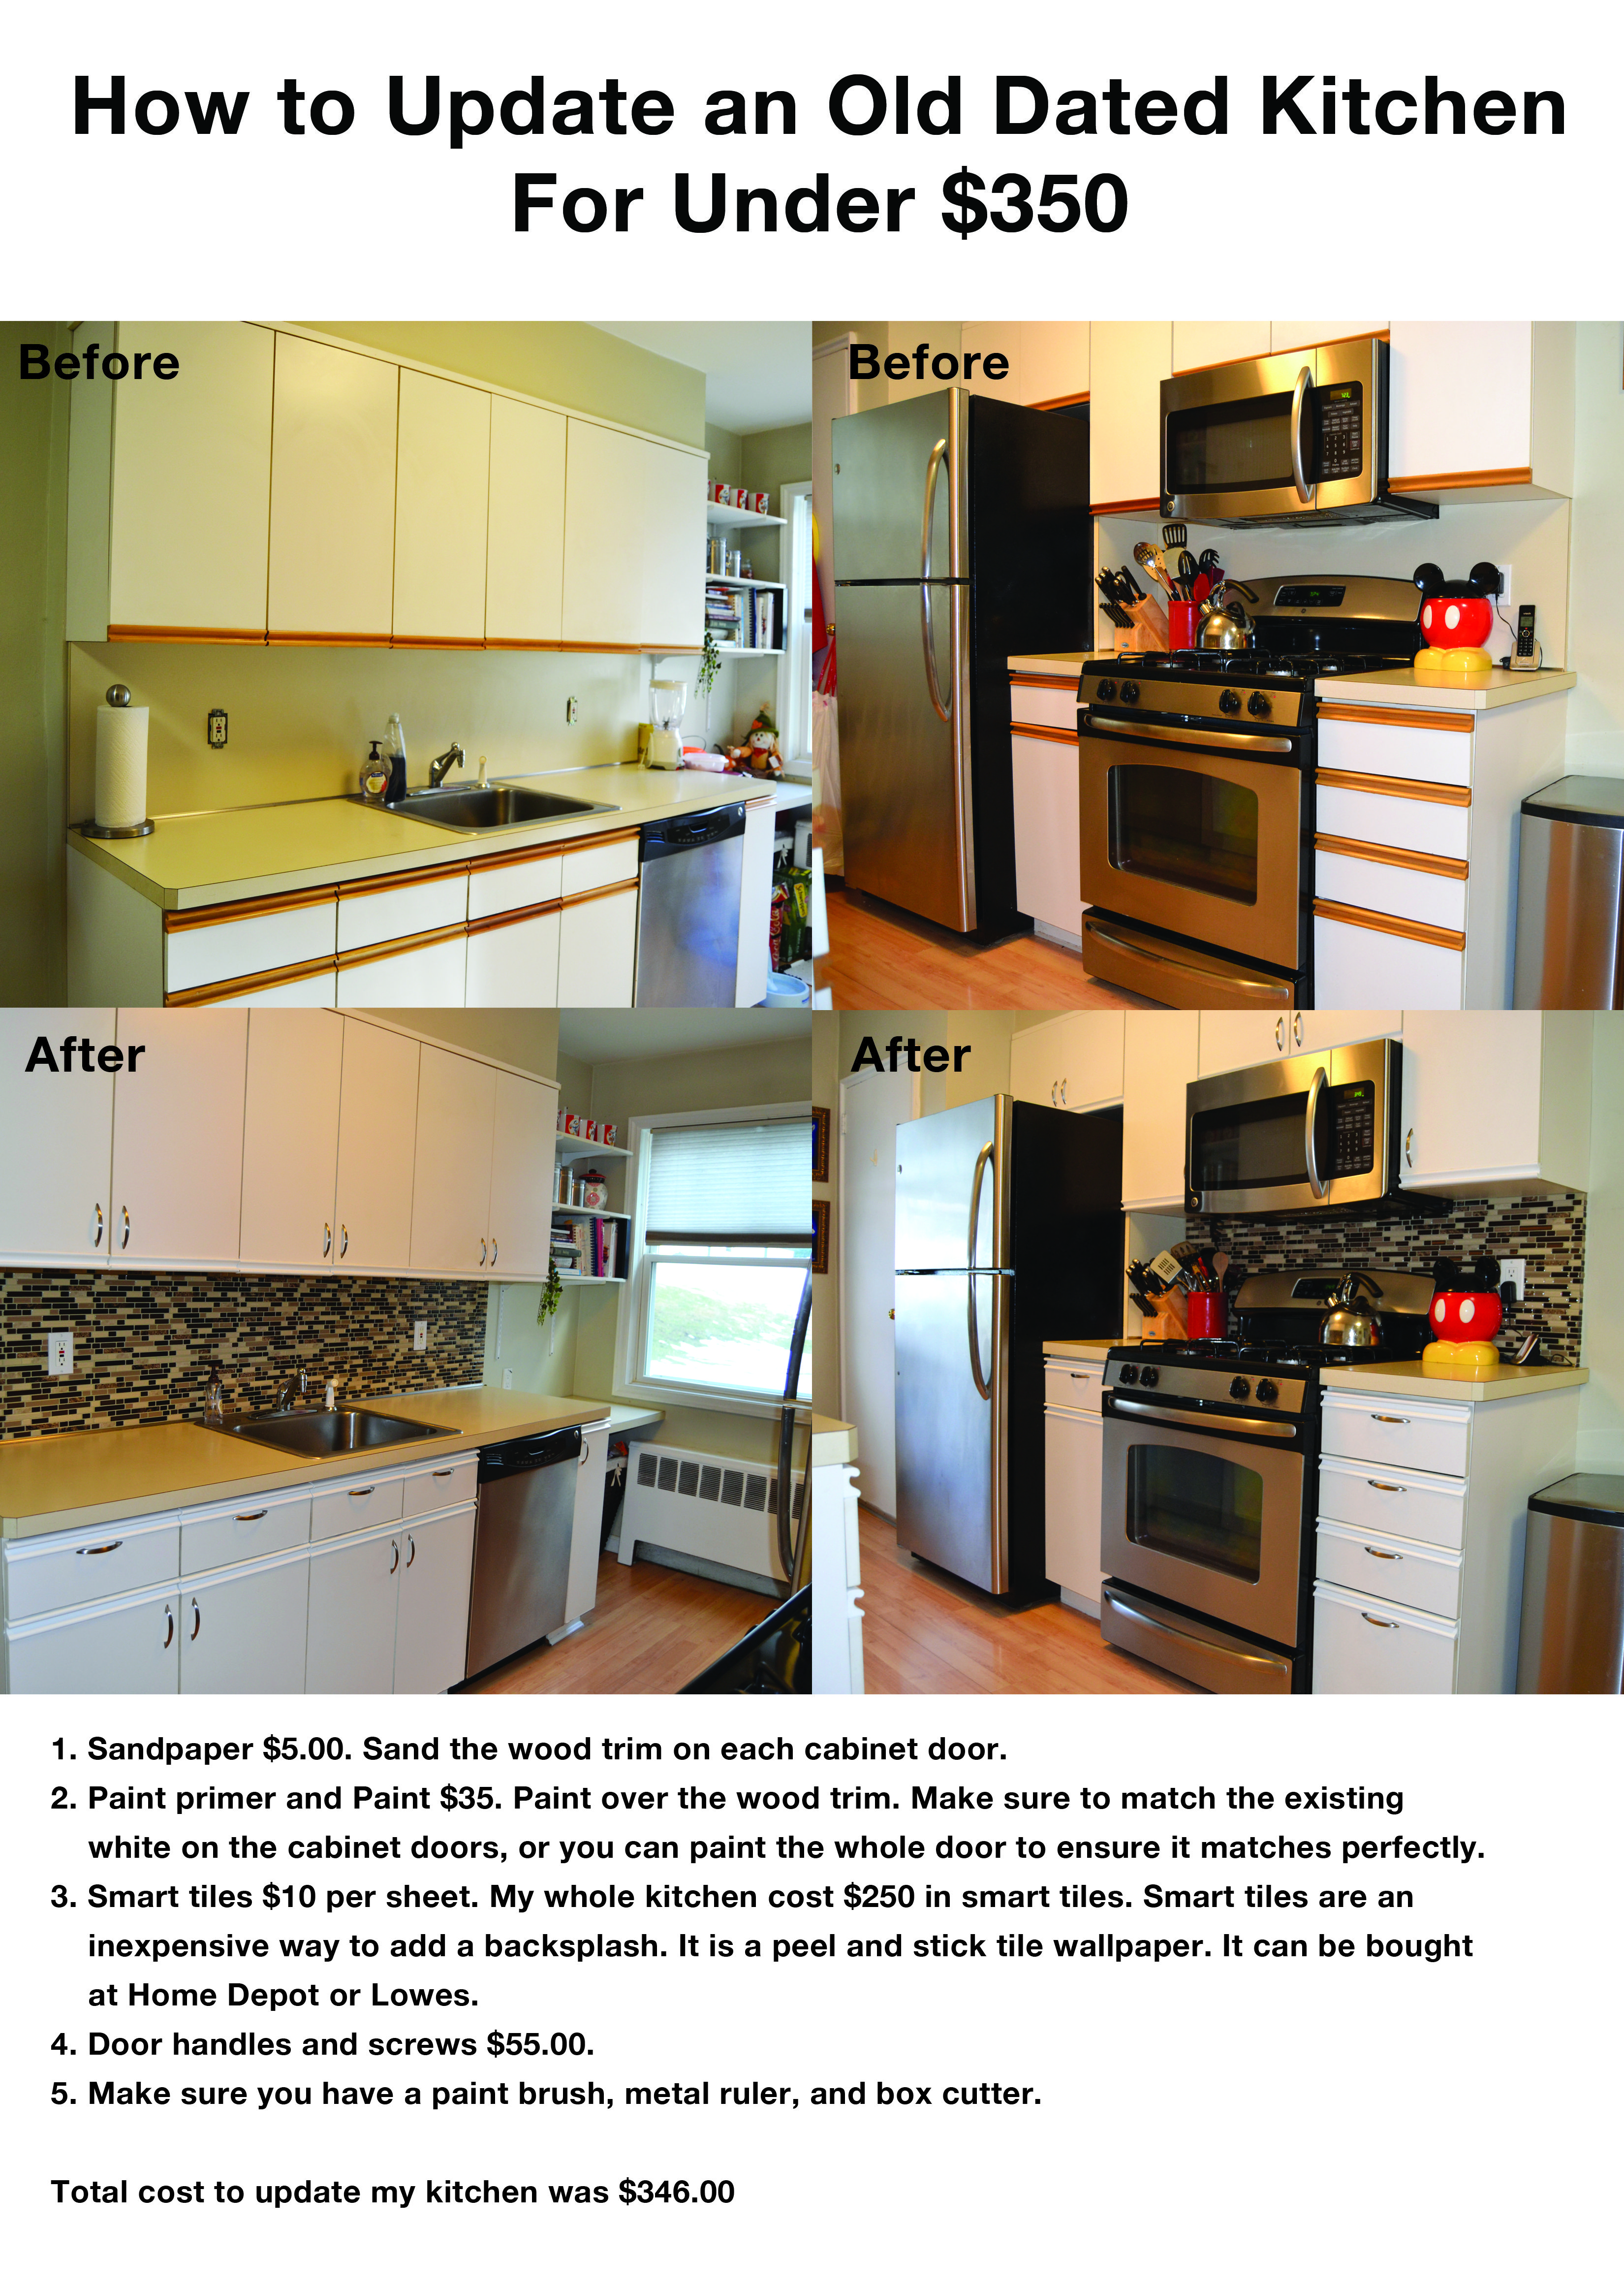 How To Update Laminate Kitchen Cabinets How I Updated My Old Dated 80 39s Kitchen For Under 350 00